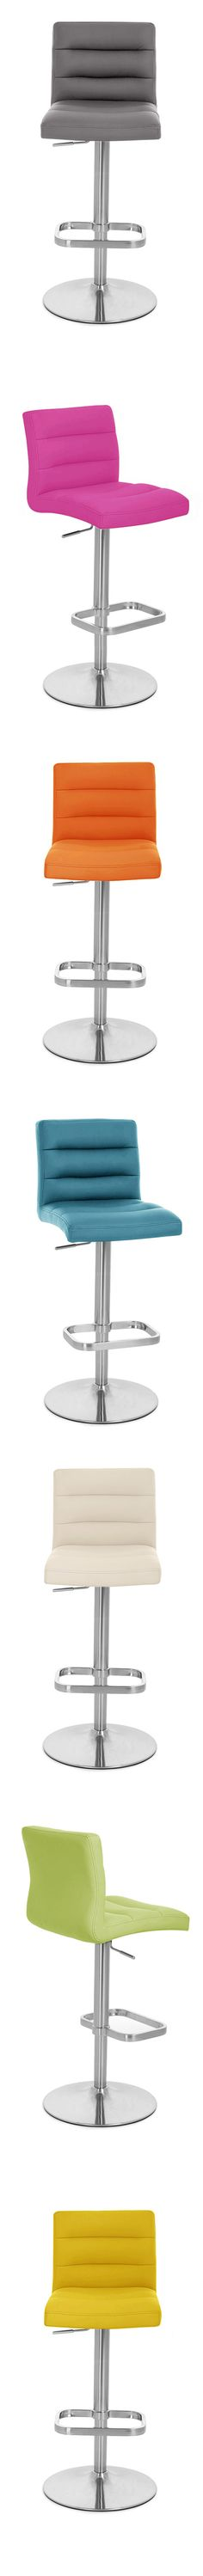 Best 25 Commercial Bar Stools Ideas On Pinterest Stools